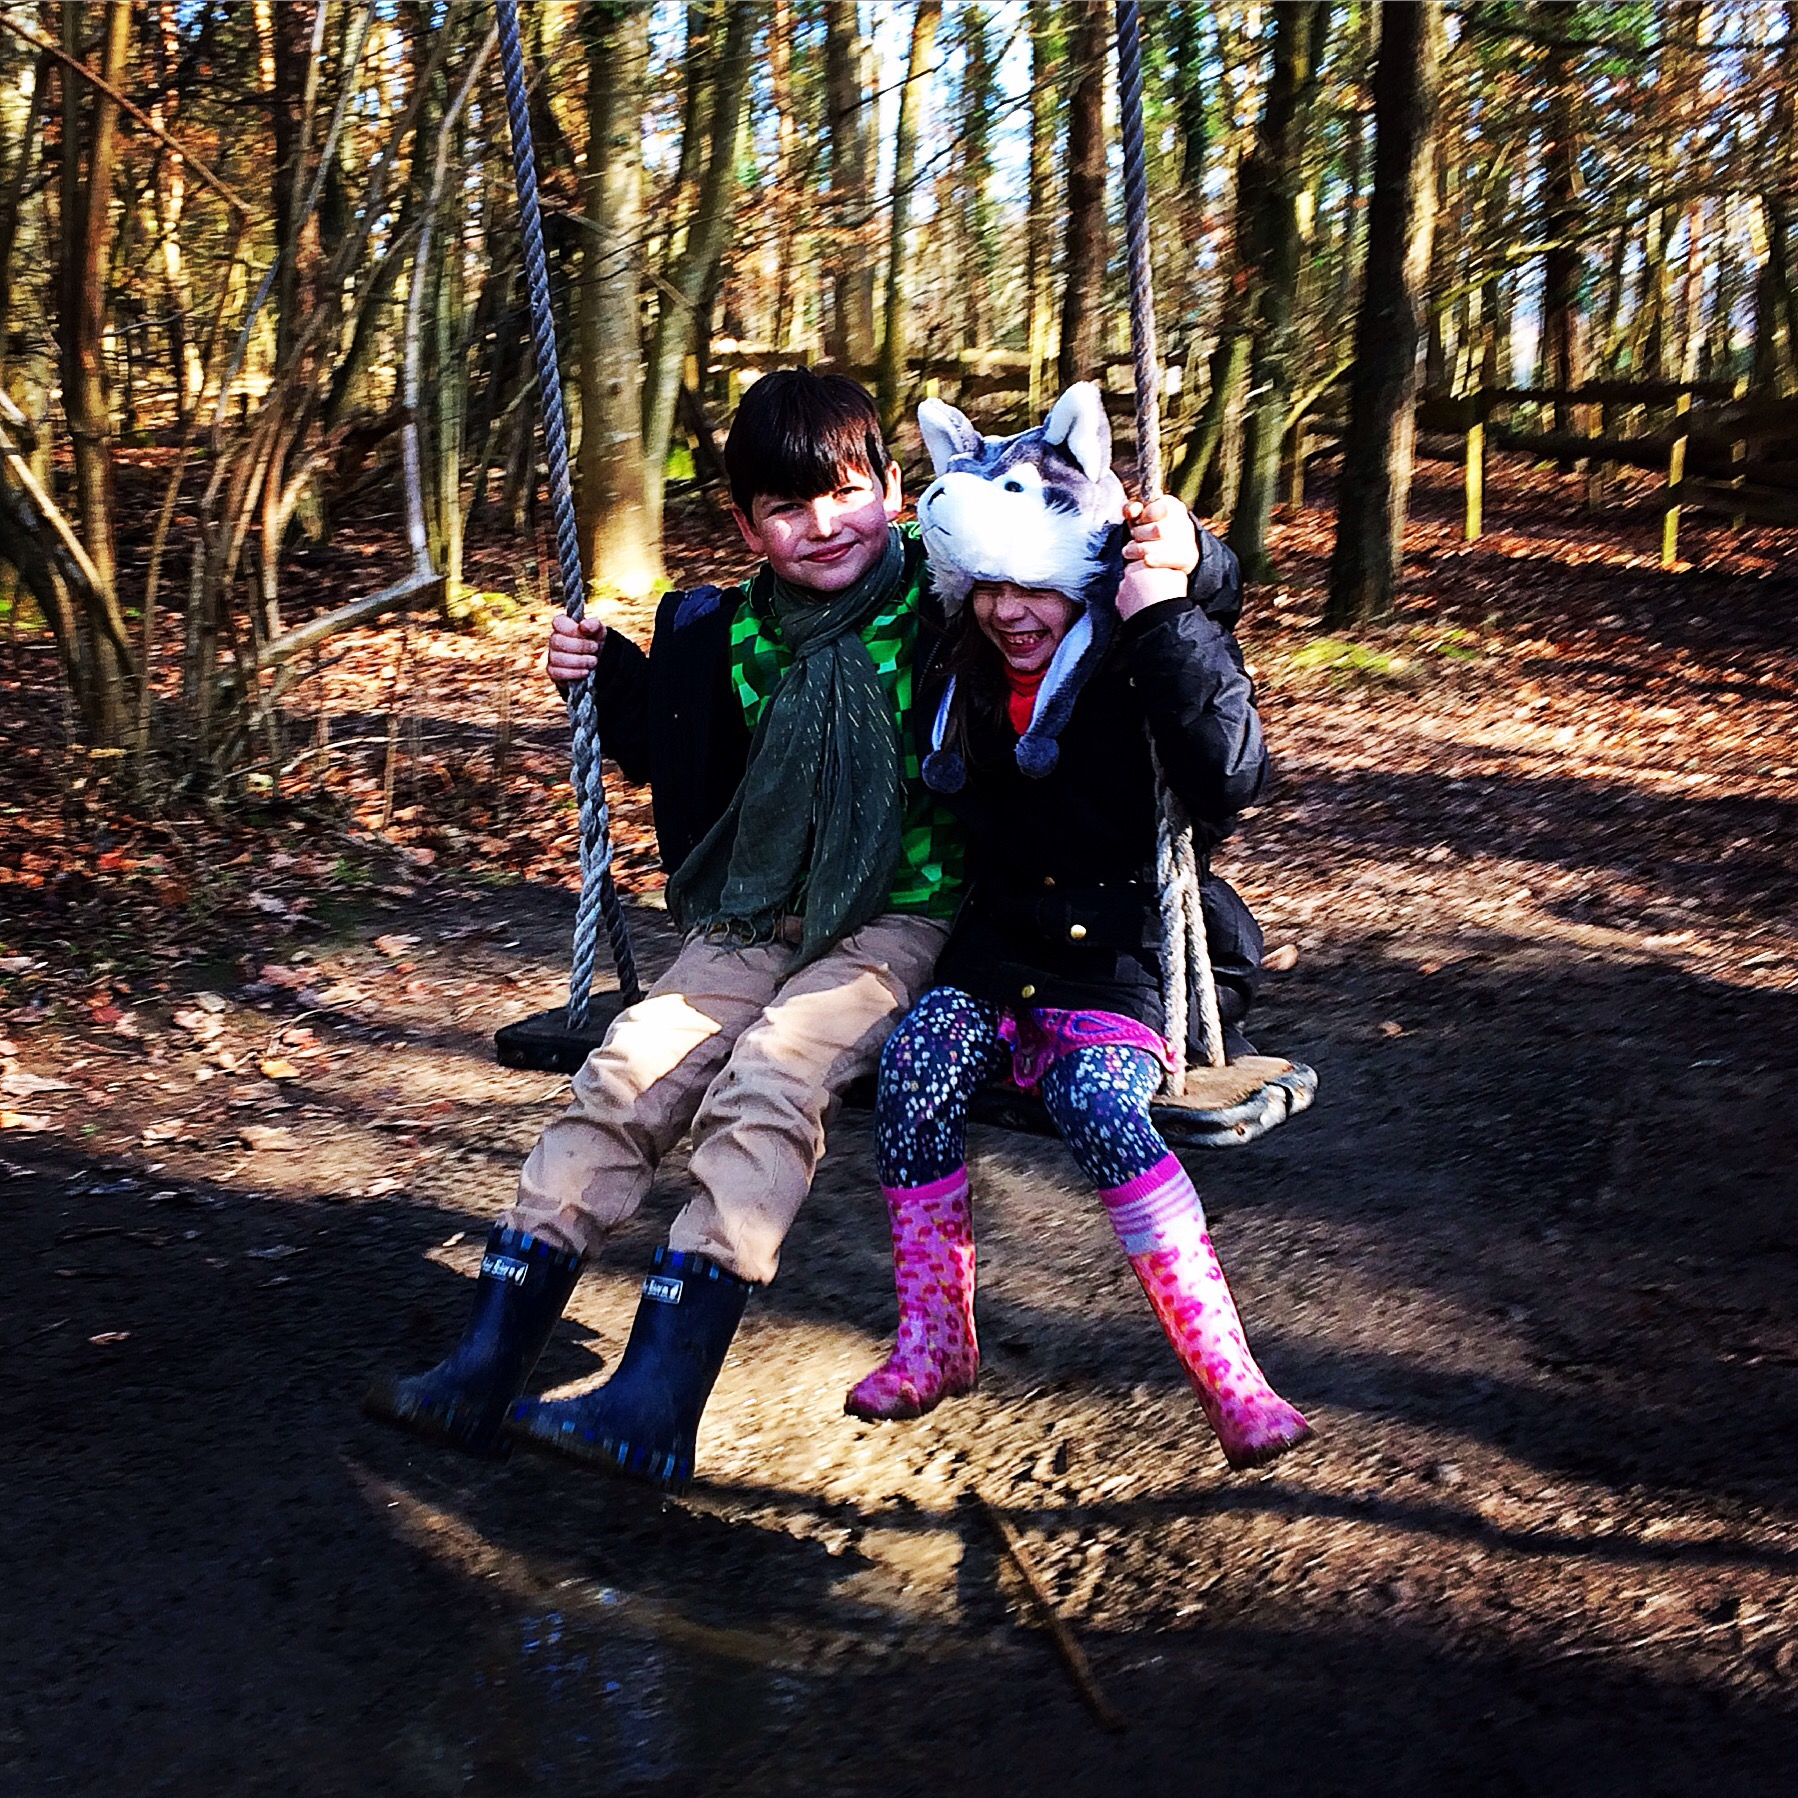 Groombridge place, Kent, family, days out, swing, happy, laughing, children